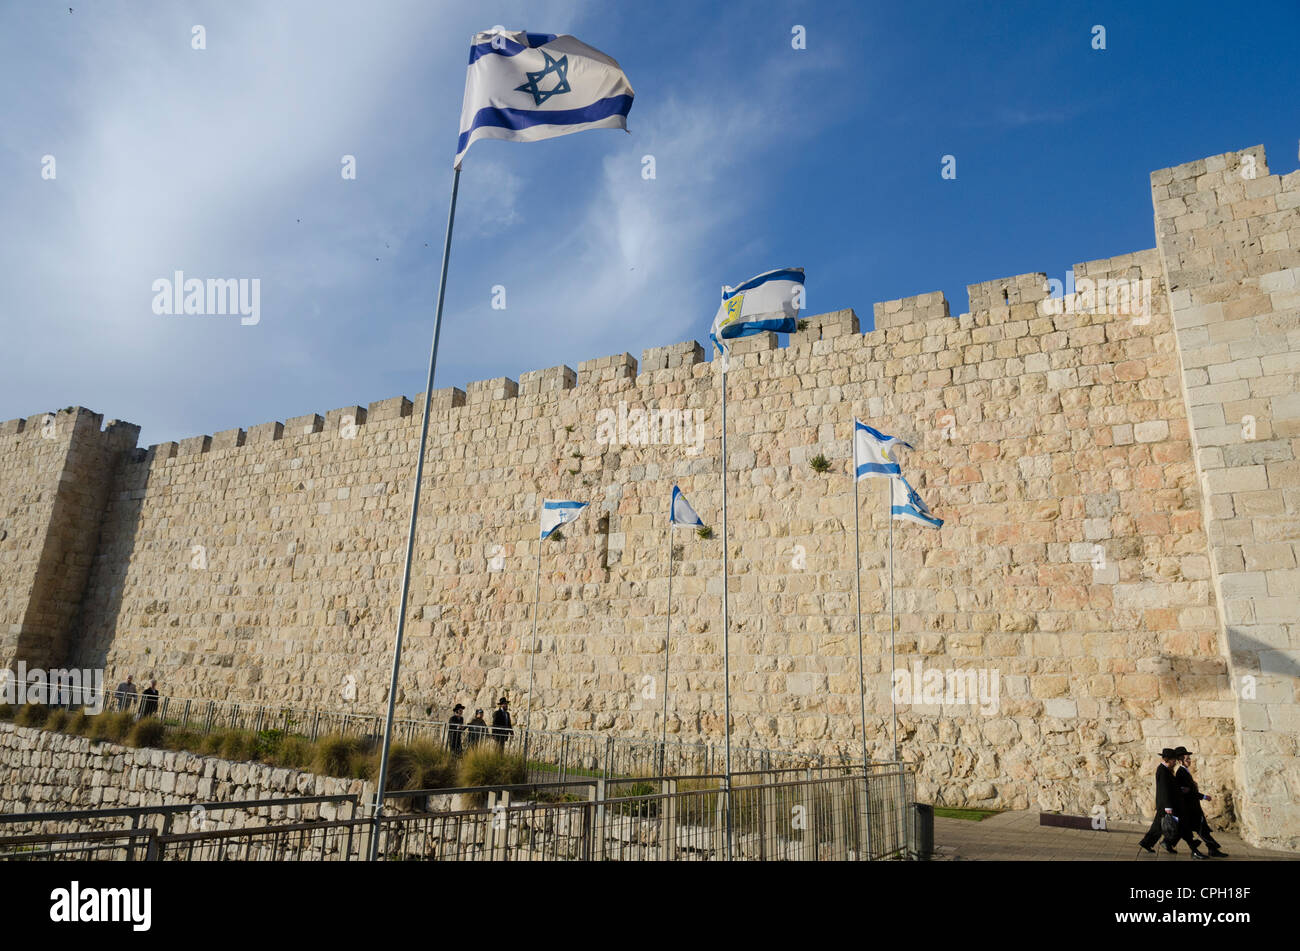 View of City Walls with orthodox jews and Israeli flag. Jerusalem Old City. israel. Stock Photo